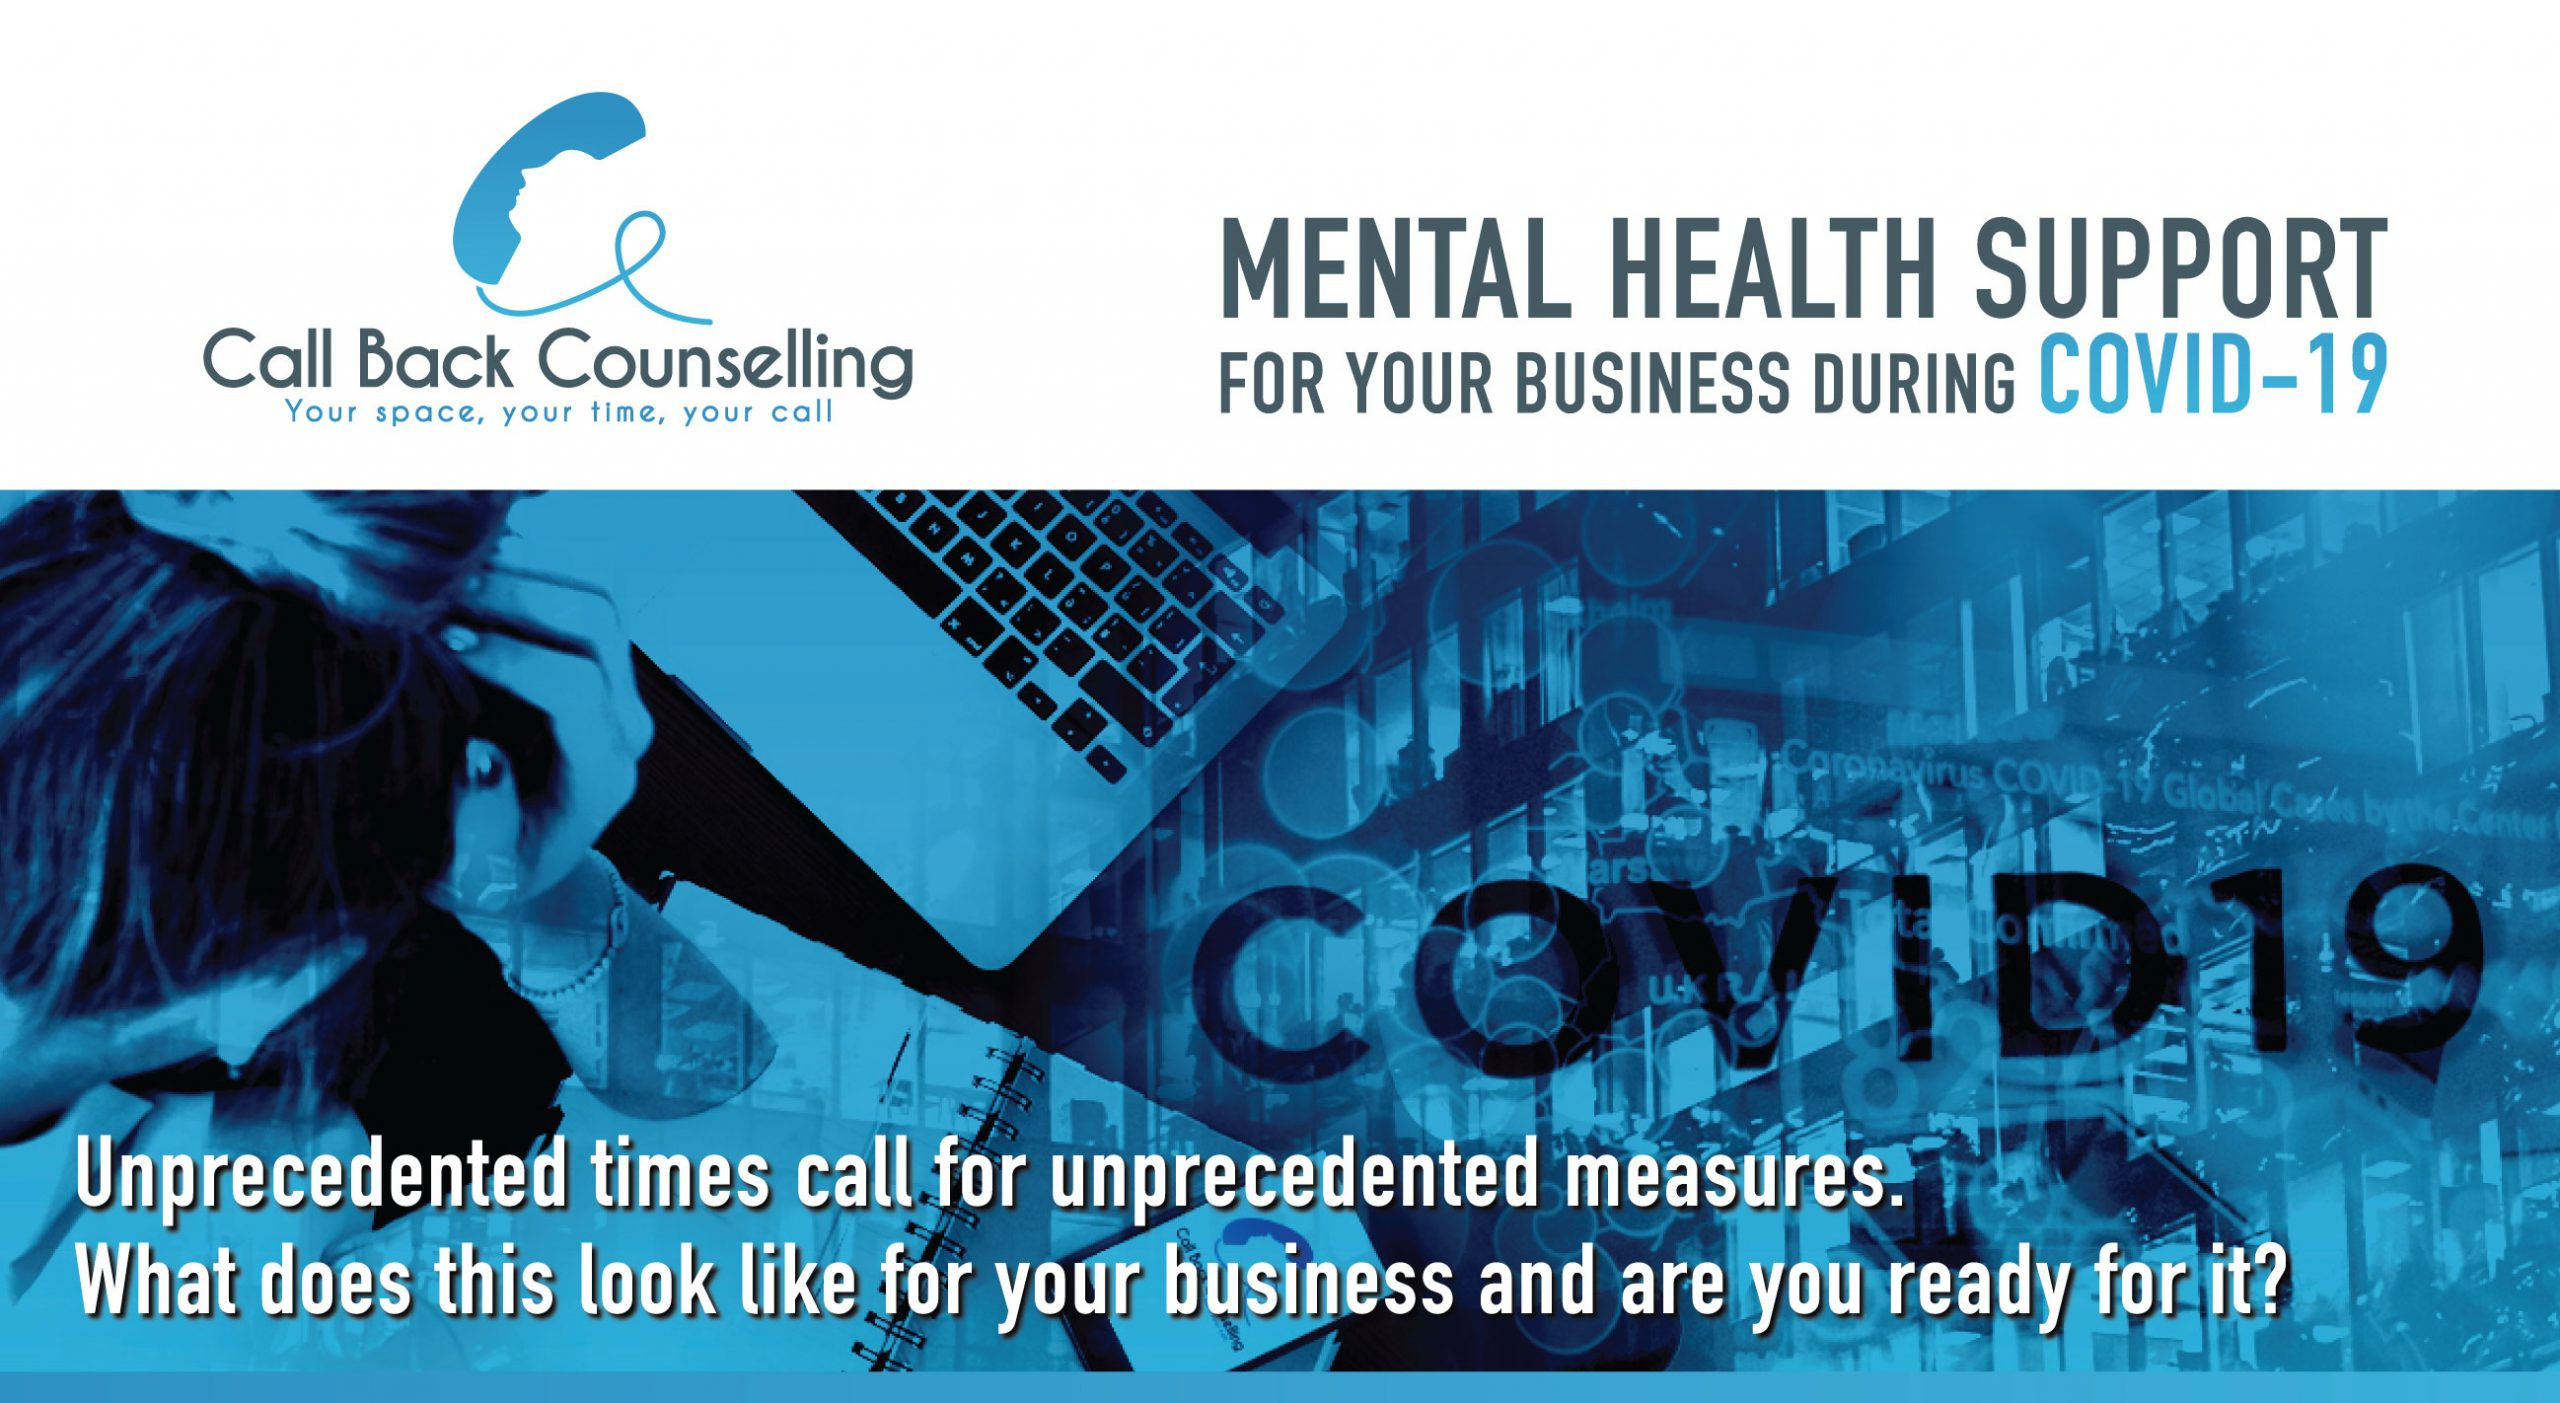 Are you prepared to support the mental health needs of your staff during this crisis?